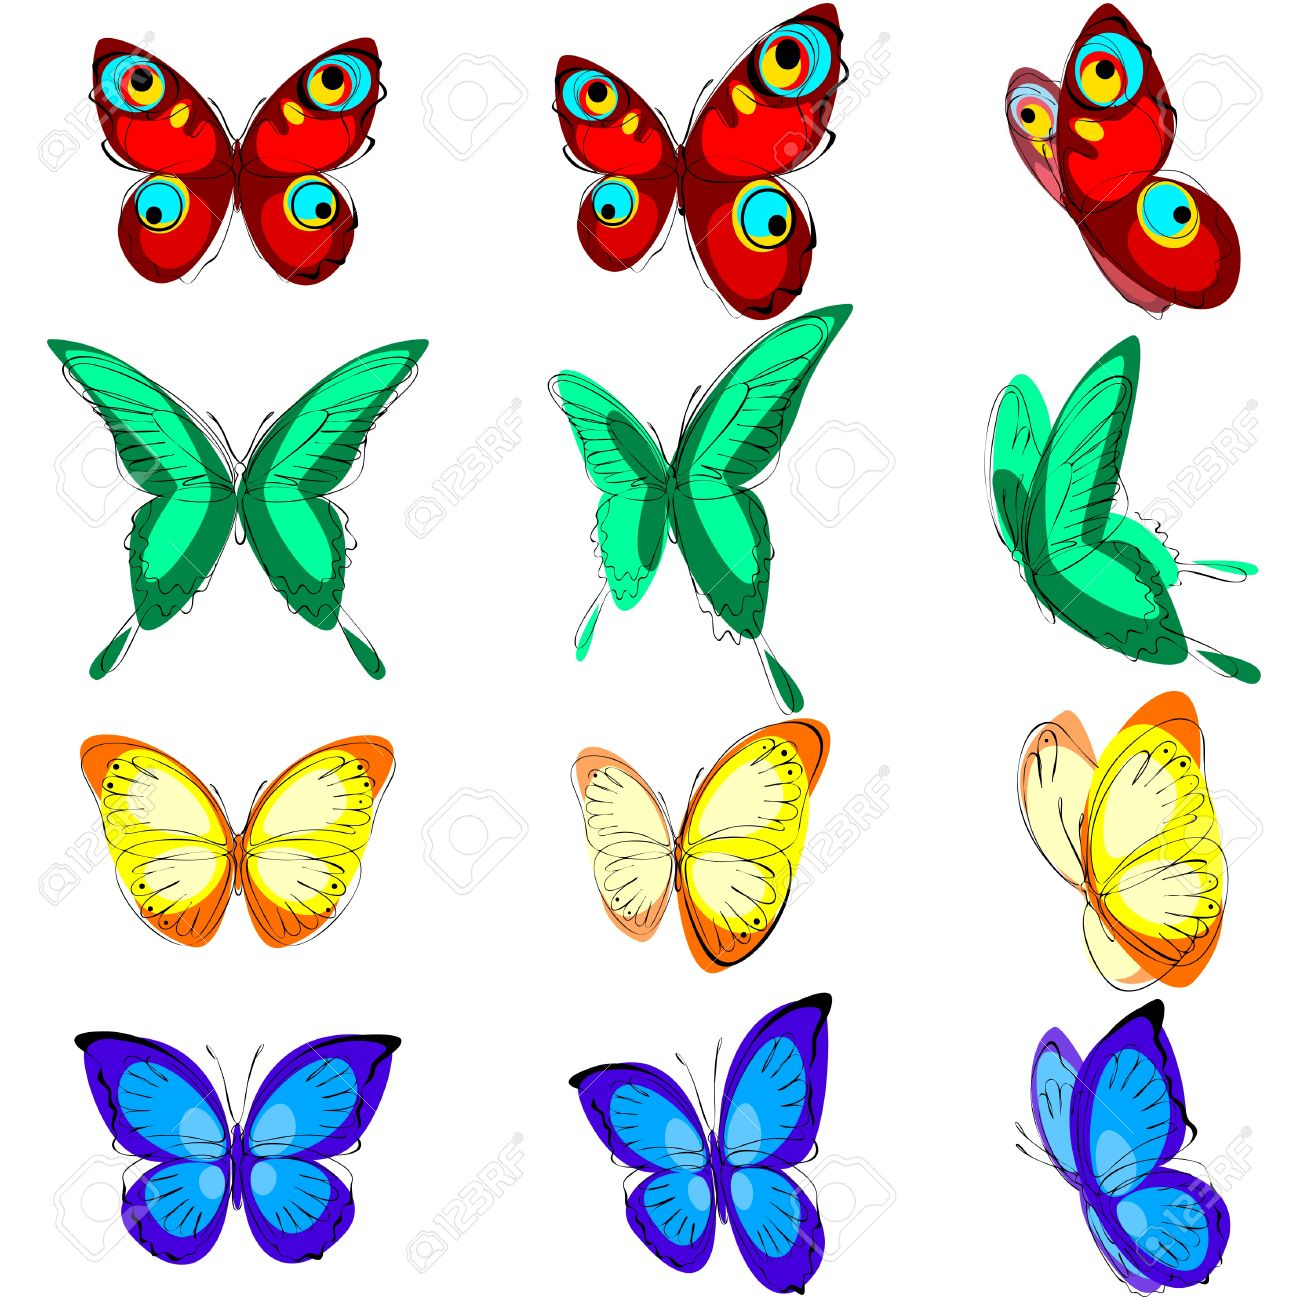 a set of different butterflies various types color options